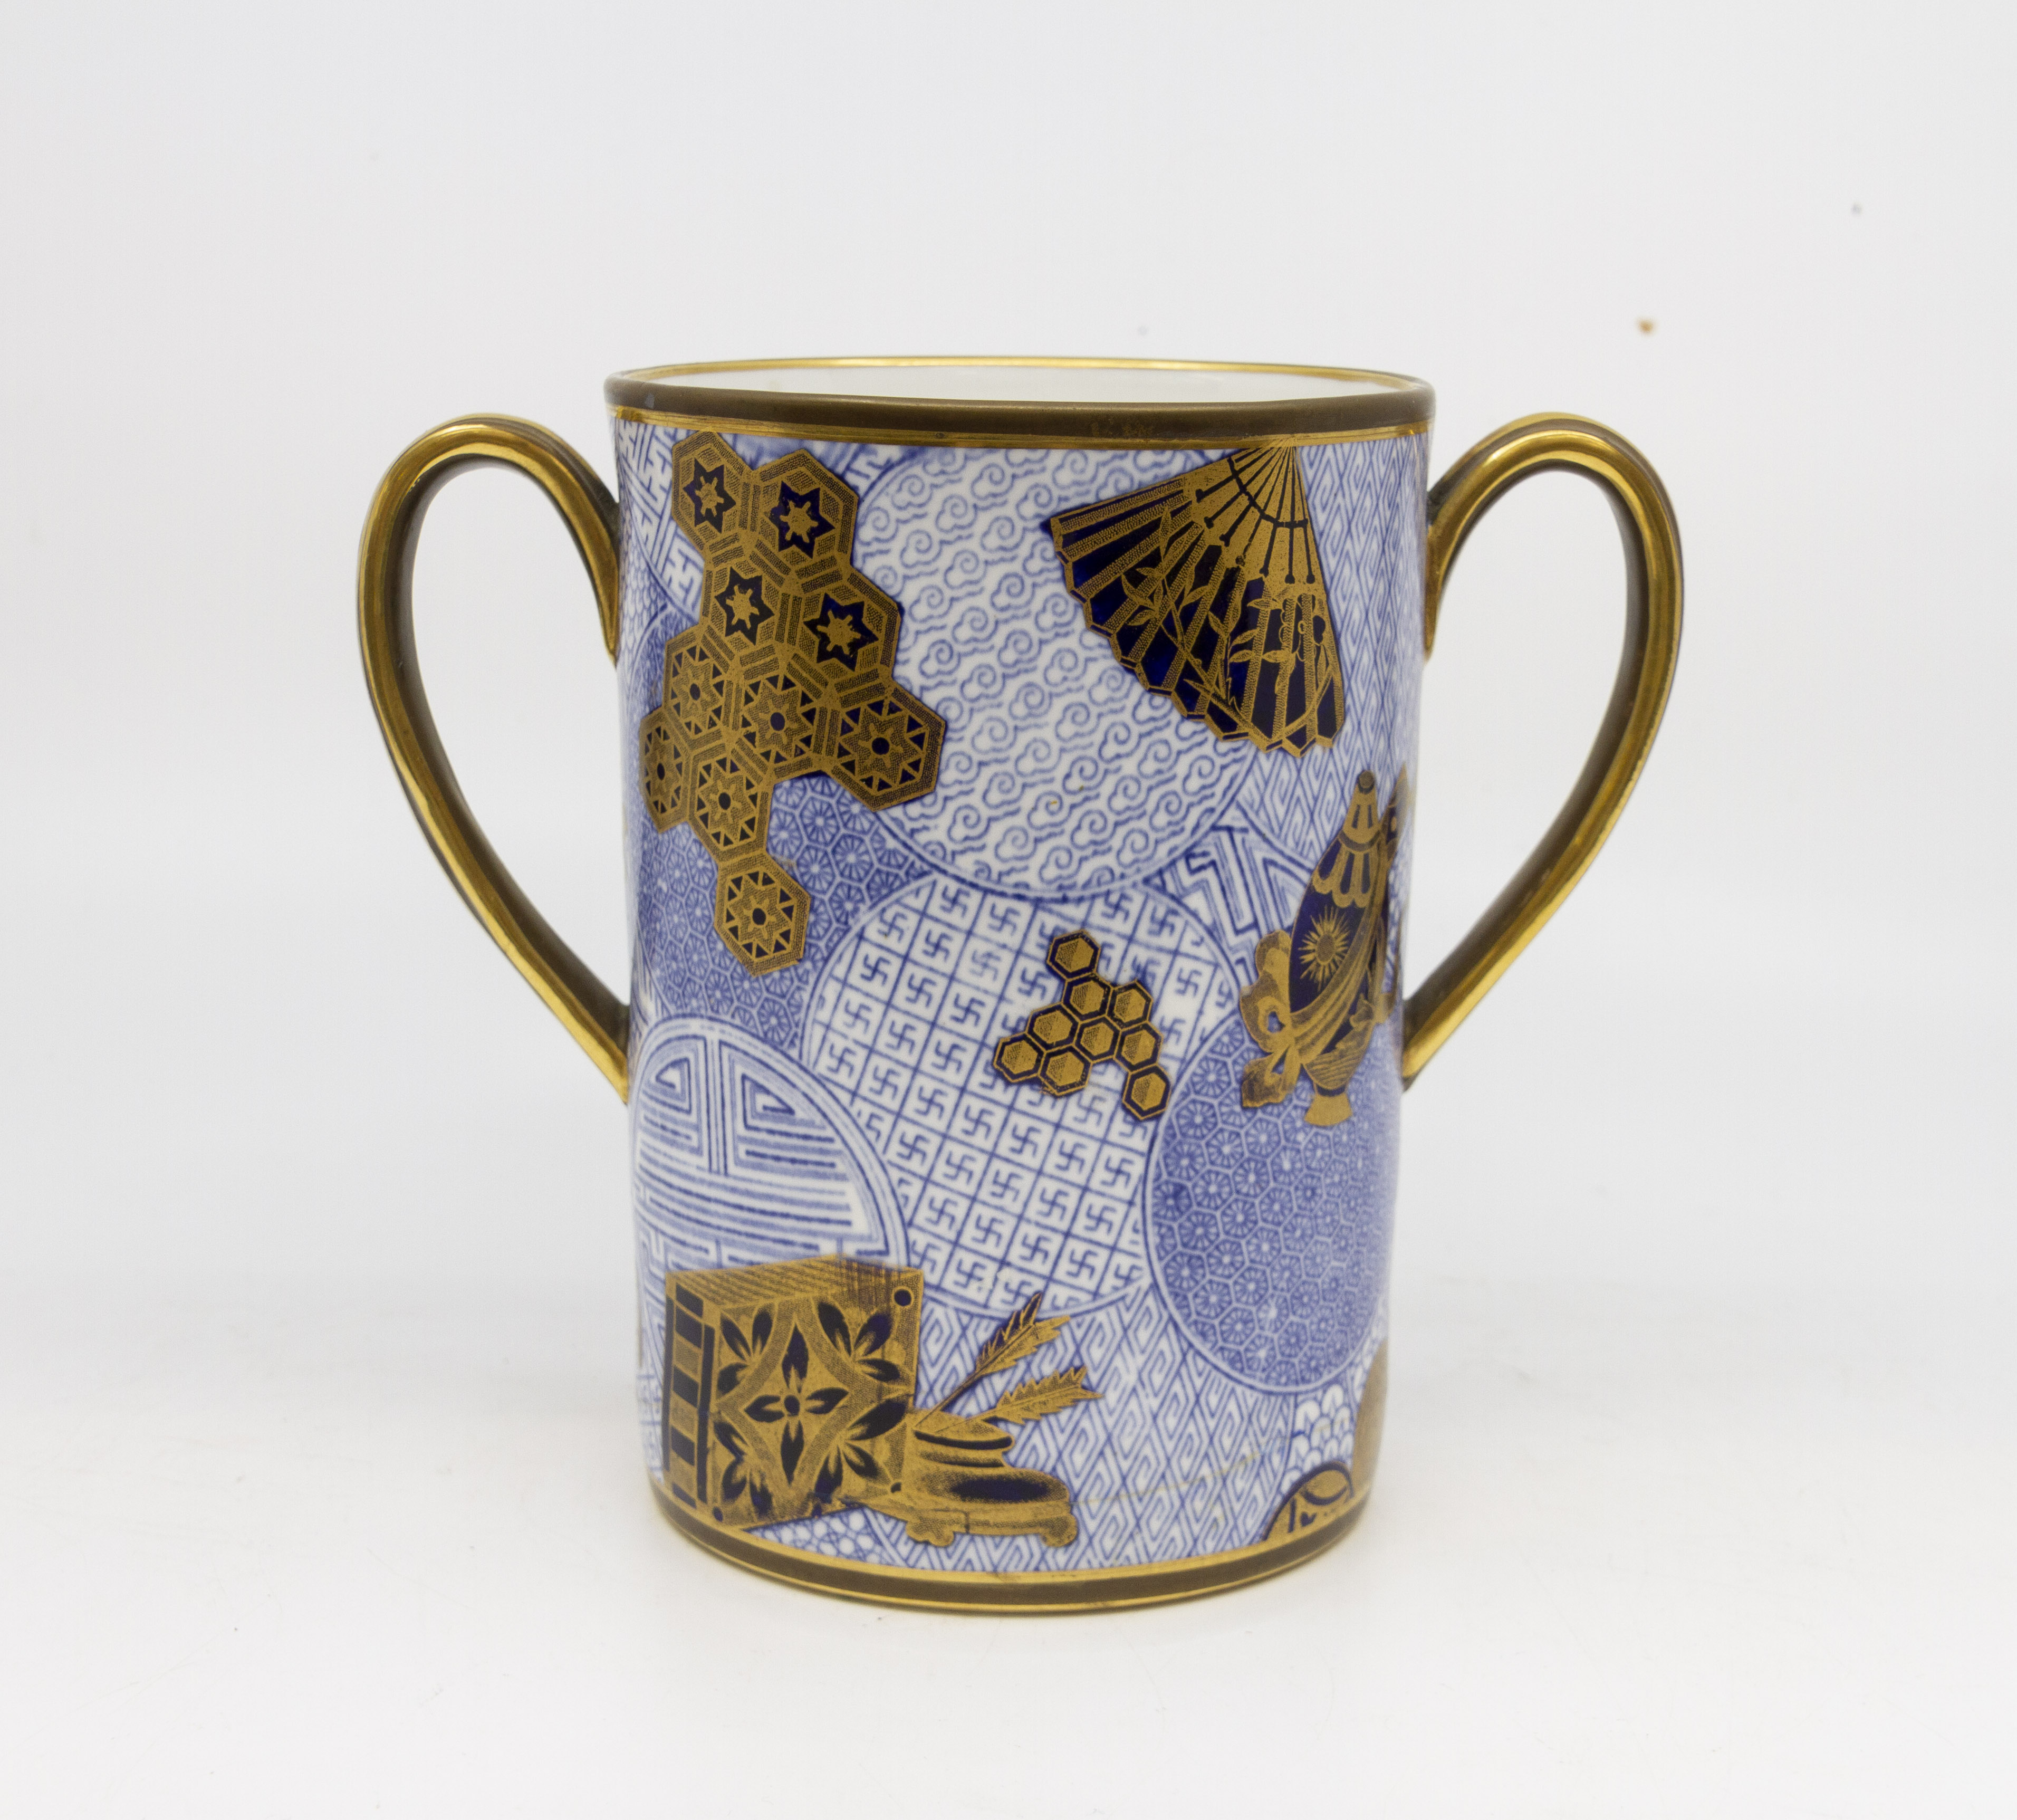 Lot 1287A - A Royal Worcester Cylindrical Twin Handled Cup, 1878 date code, 11cm diam 15.5cm high.